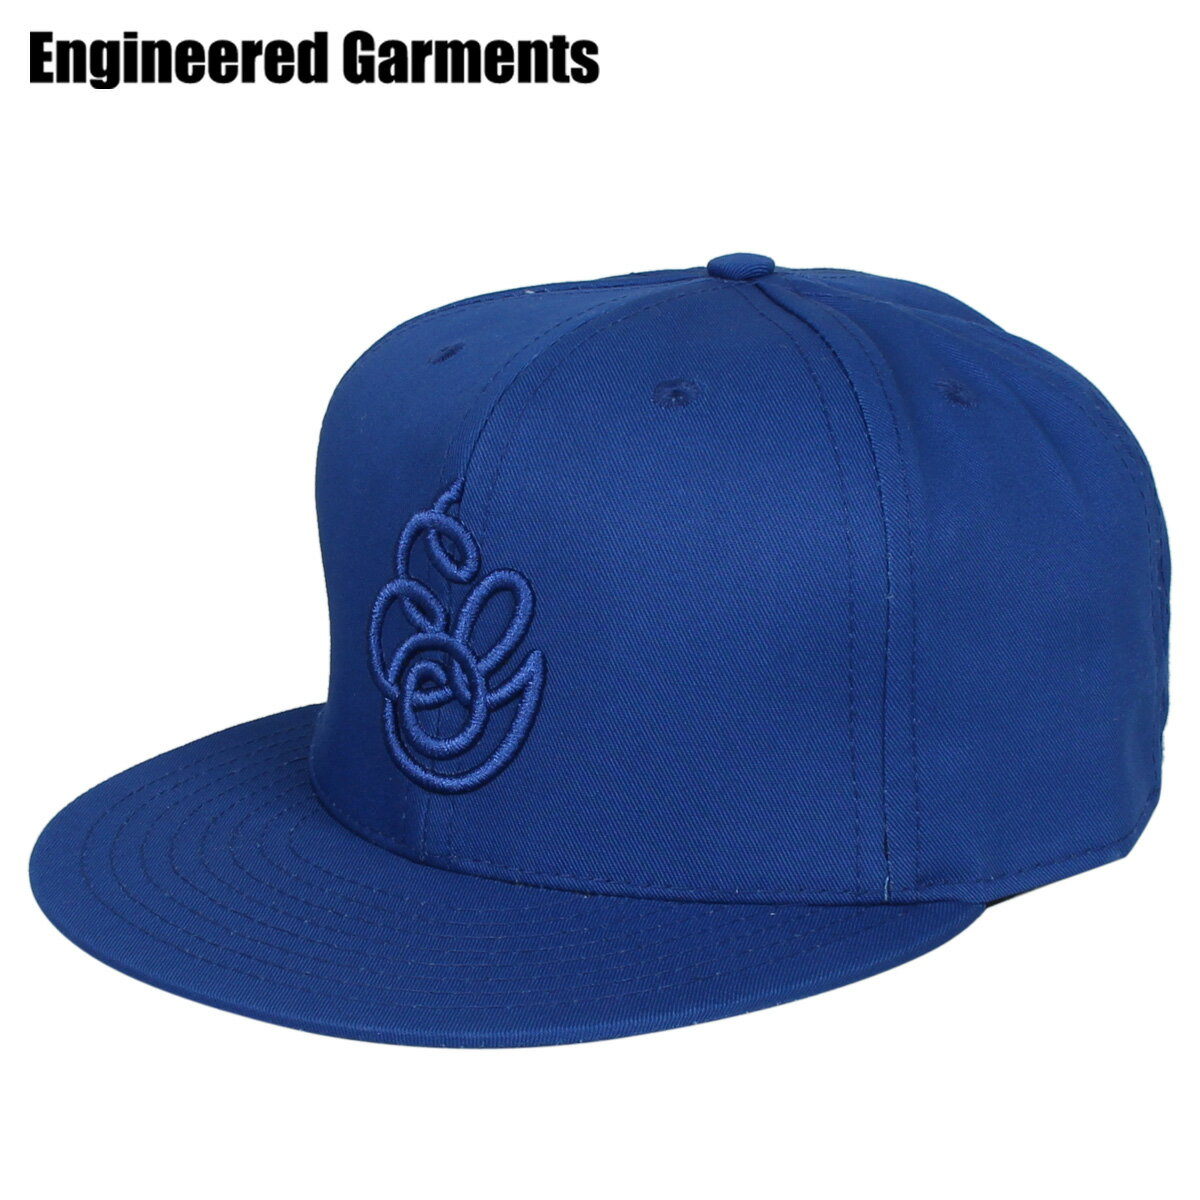 メンズ帽子, キャップ ENGINEERED GARMENTS LOGO BASEBALL CAP 20S1H027 326